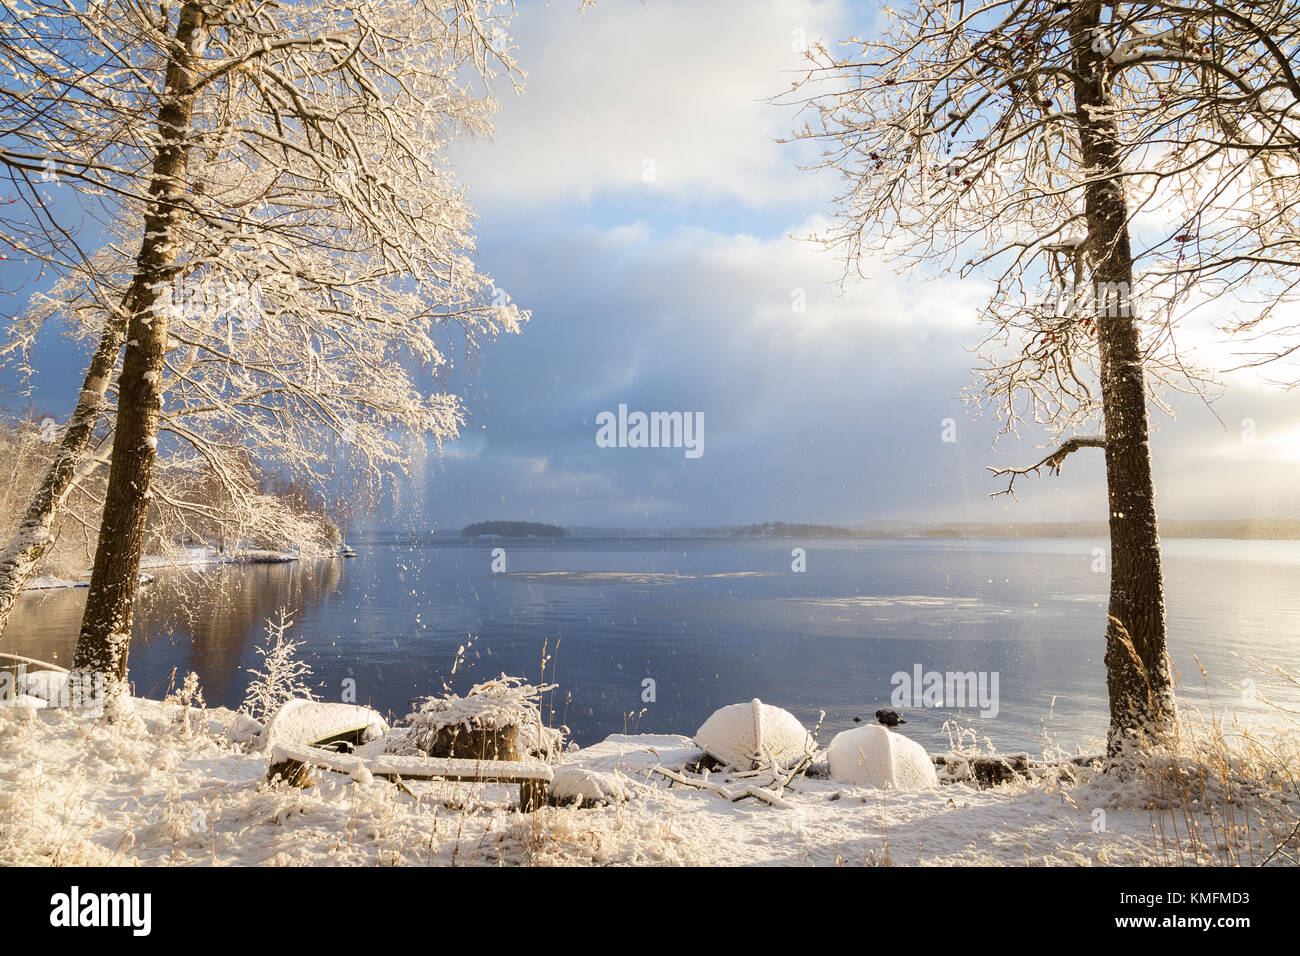 Beautiful view of Lake Pyhäjärvi, snowy ground, rowboats and trees and snow falling from trees on a sunny - Stock Image